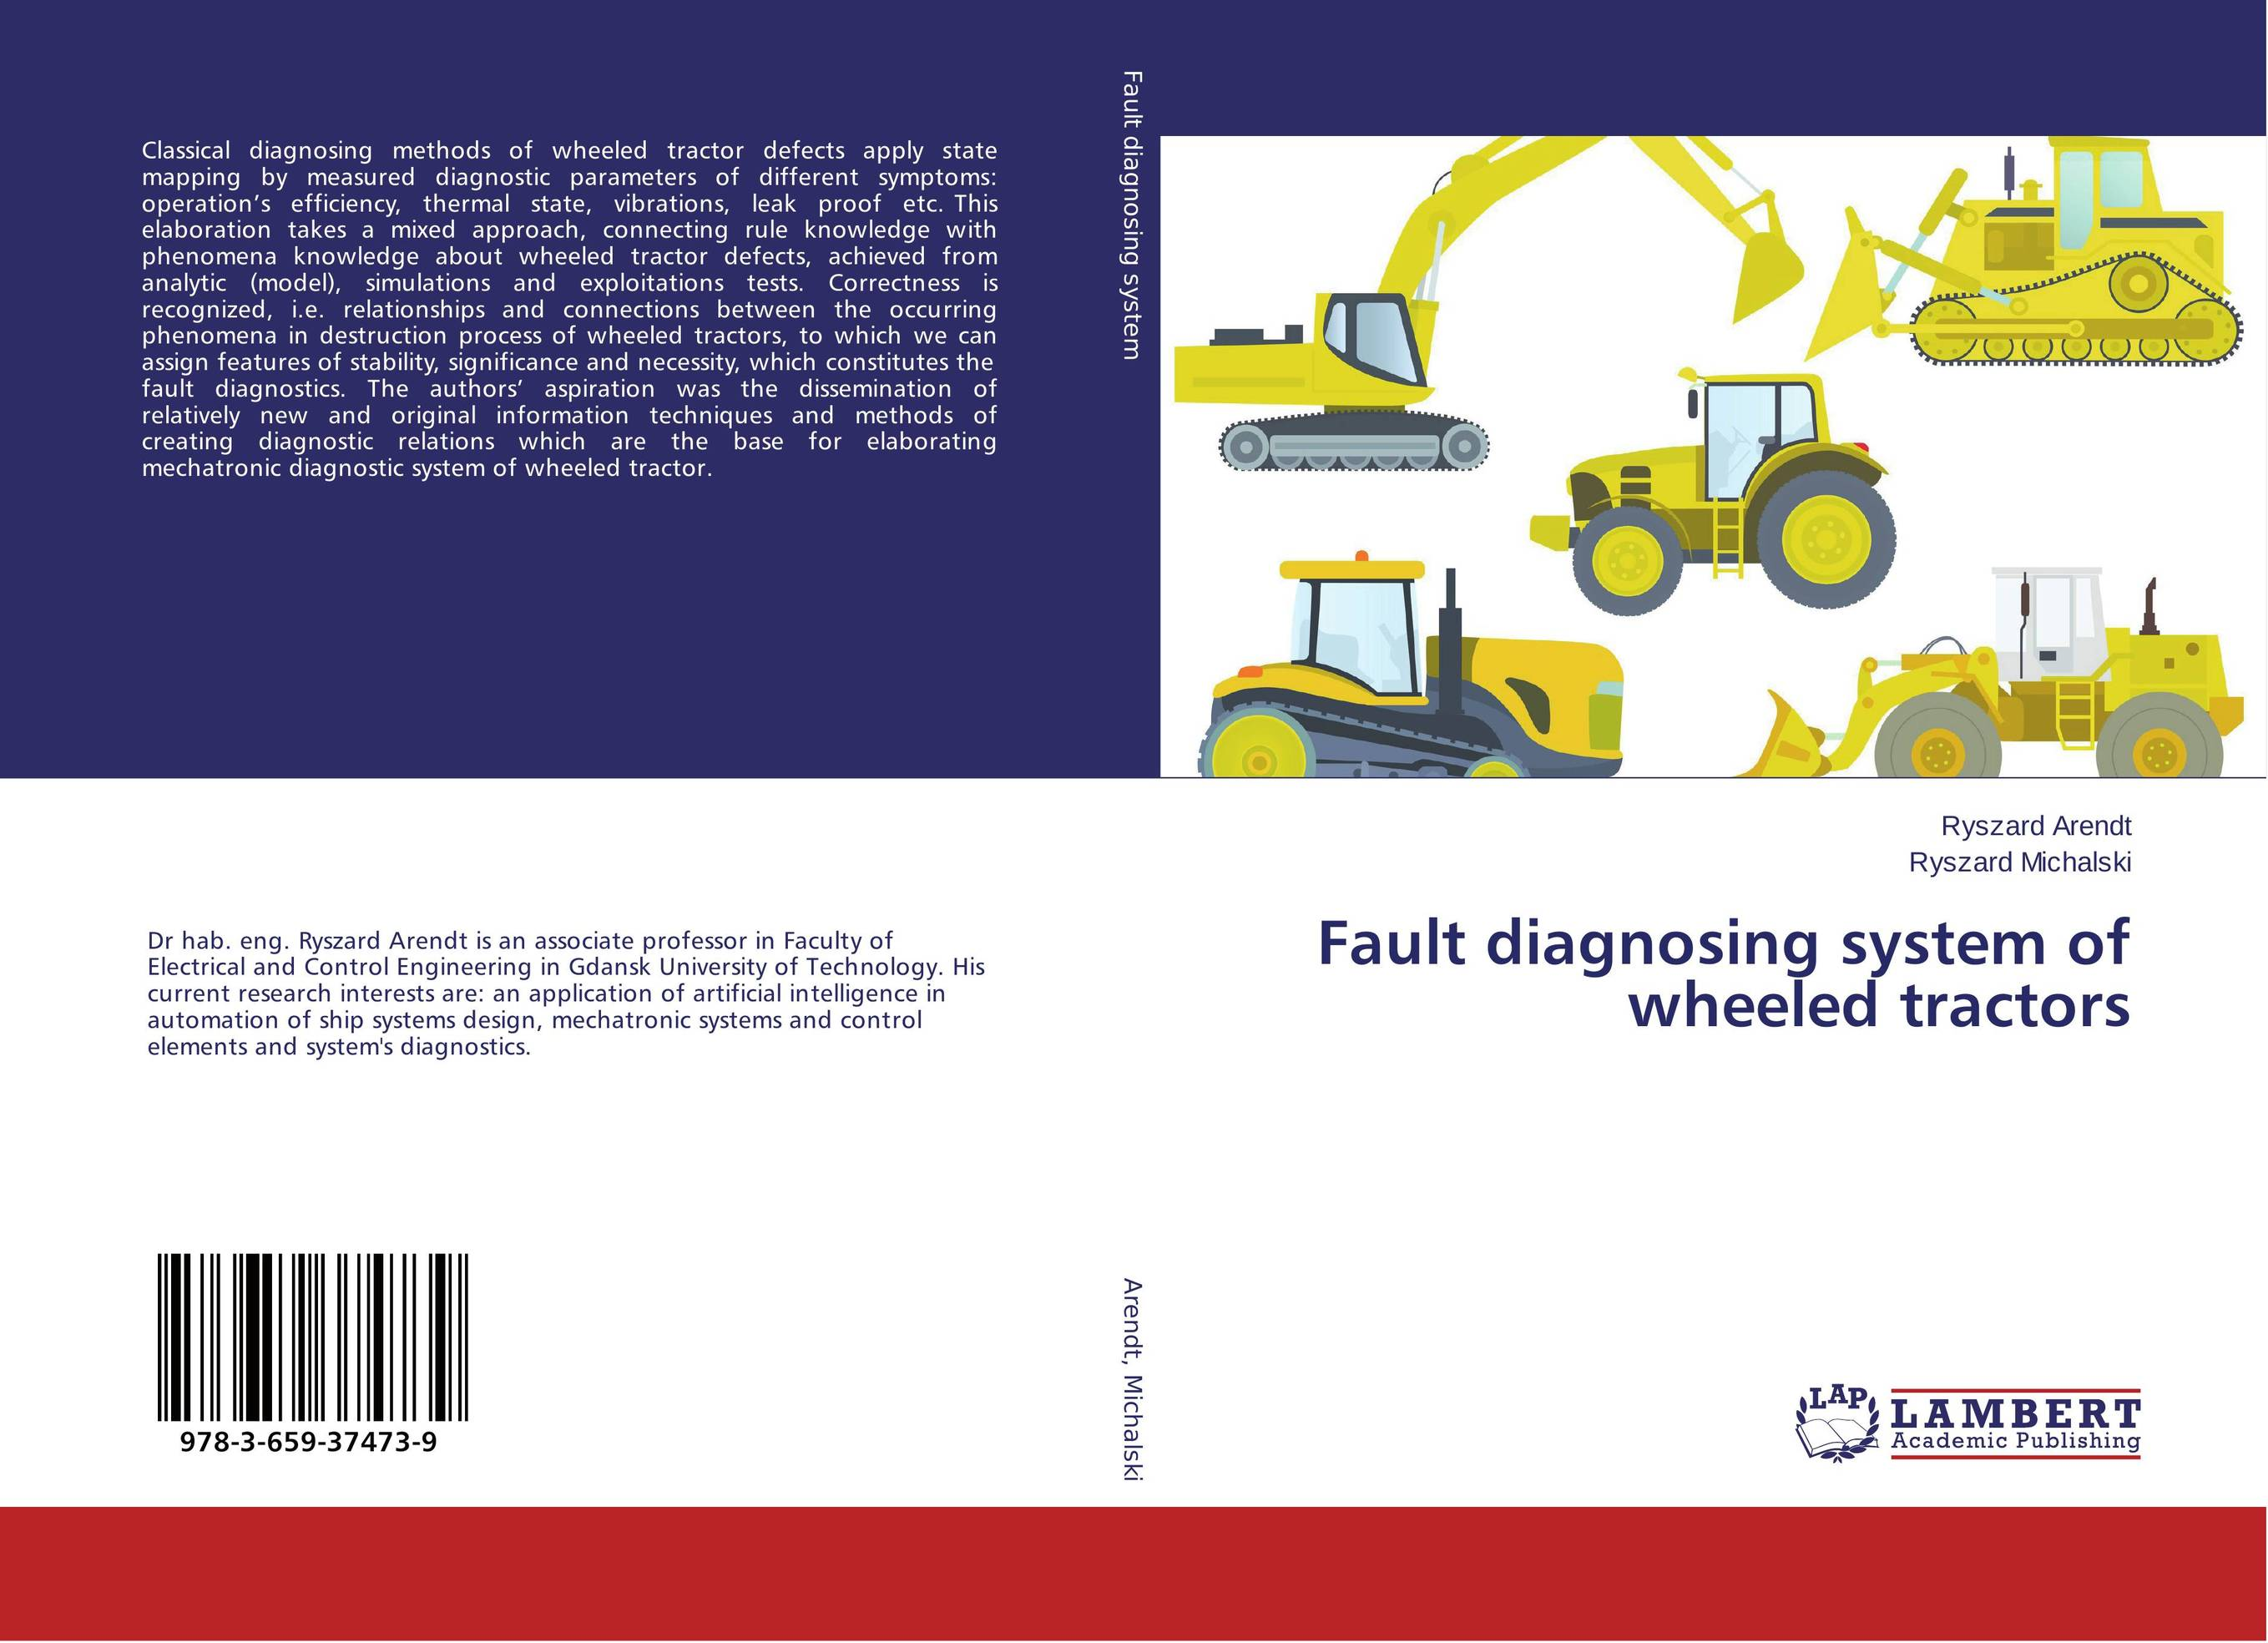 Fault diagnosing system of wheeled tractors